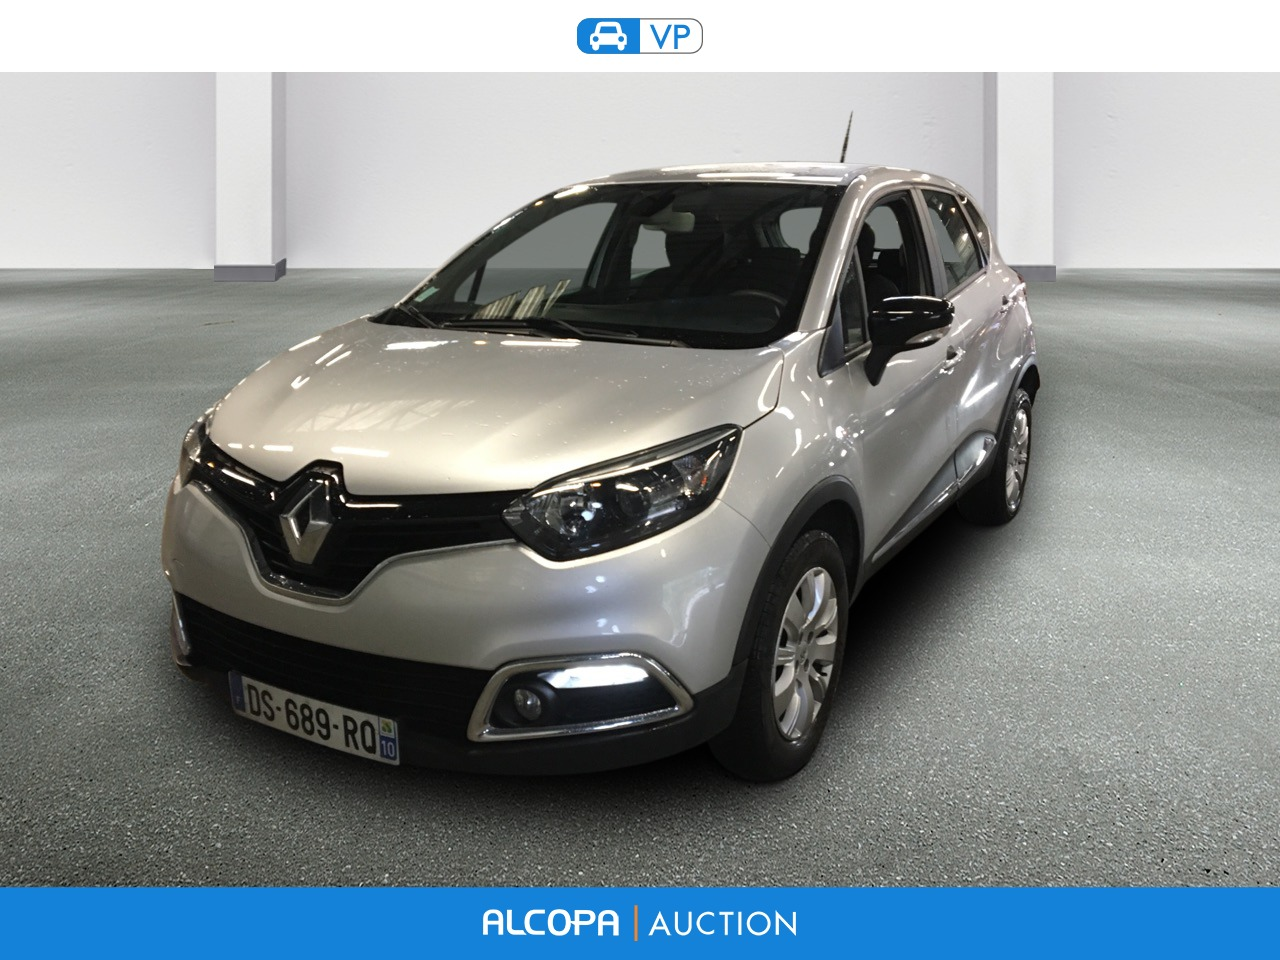 renault captur business 03 2013 05 2017 captur dci 90 energy business alcopa auction. Black Bedroom Furniture Sets. Home Design Ideas